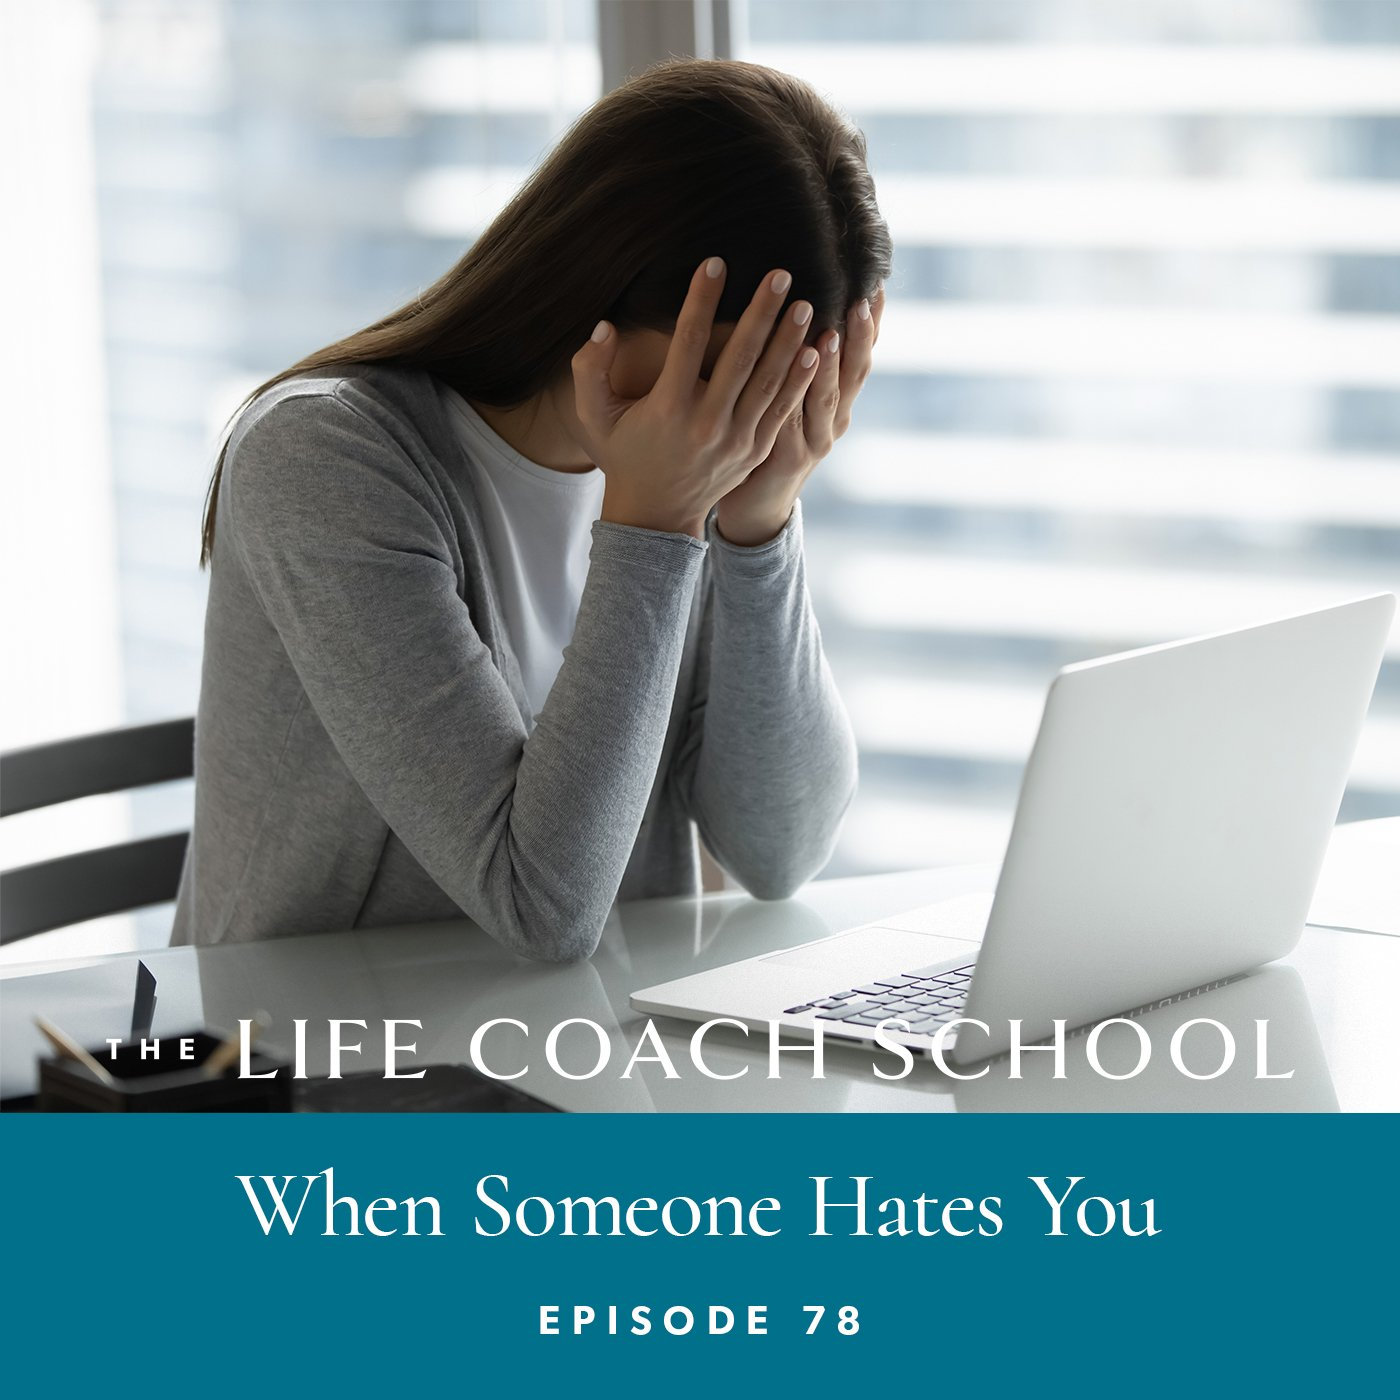 The Life Coach School Podcast with Brooke Castillo | Episode 78 | When Someone Hates You